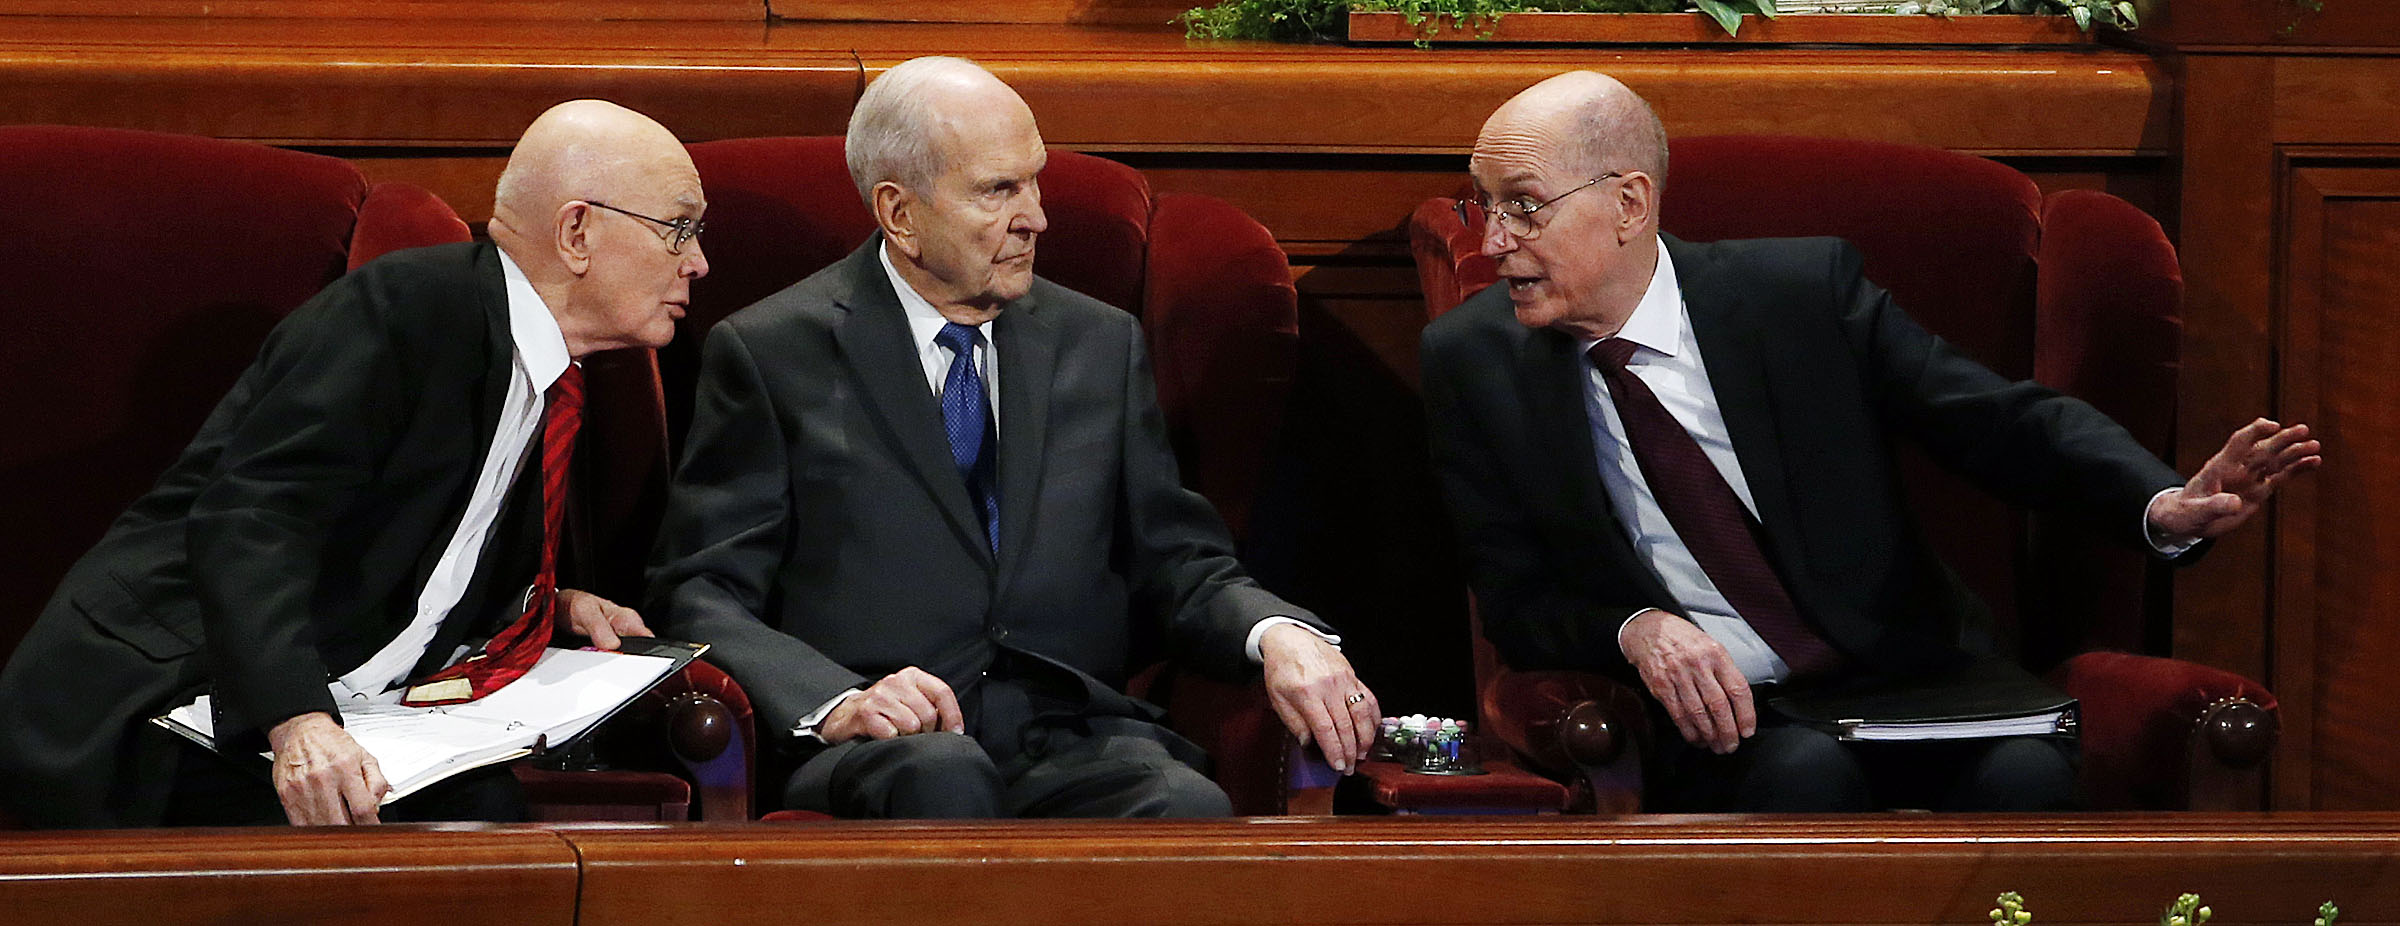 LDS Church President Russell M. Nelson, center, and his counselors, President Dallin H. Oaks, first counselor in the First Presidency, left, and President Henry B. Eyring, second counselor in the First Presidency, right, confer at the beginning of the Saturday afternoon session of the 188th Annual General Conference in Salt Lake City on Saturday, March 31, 2018.